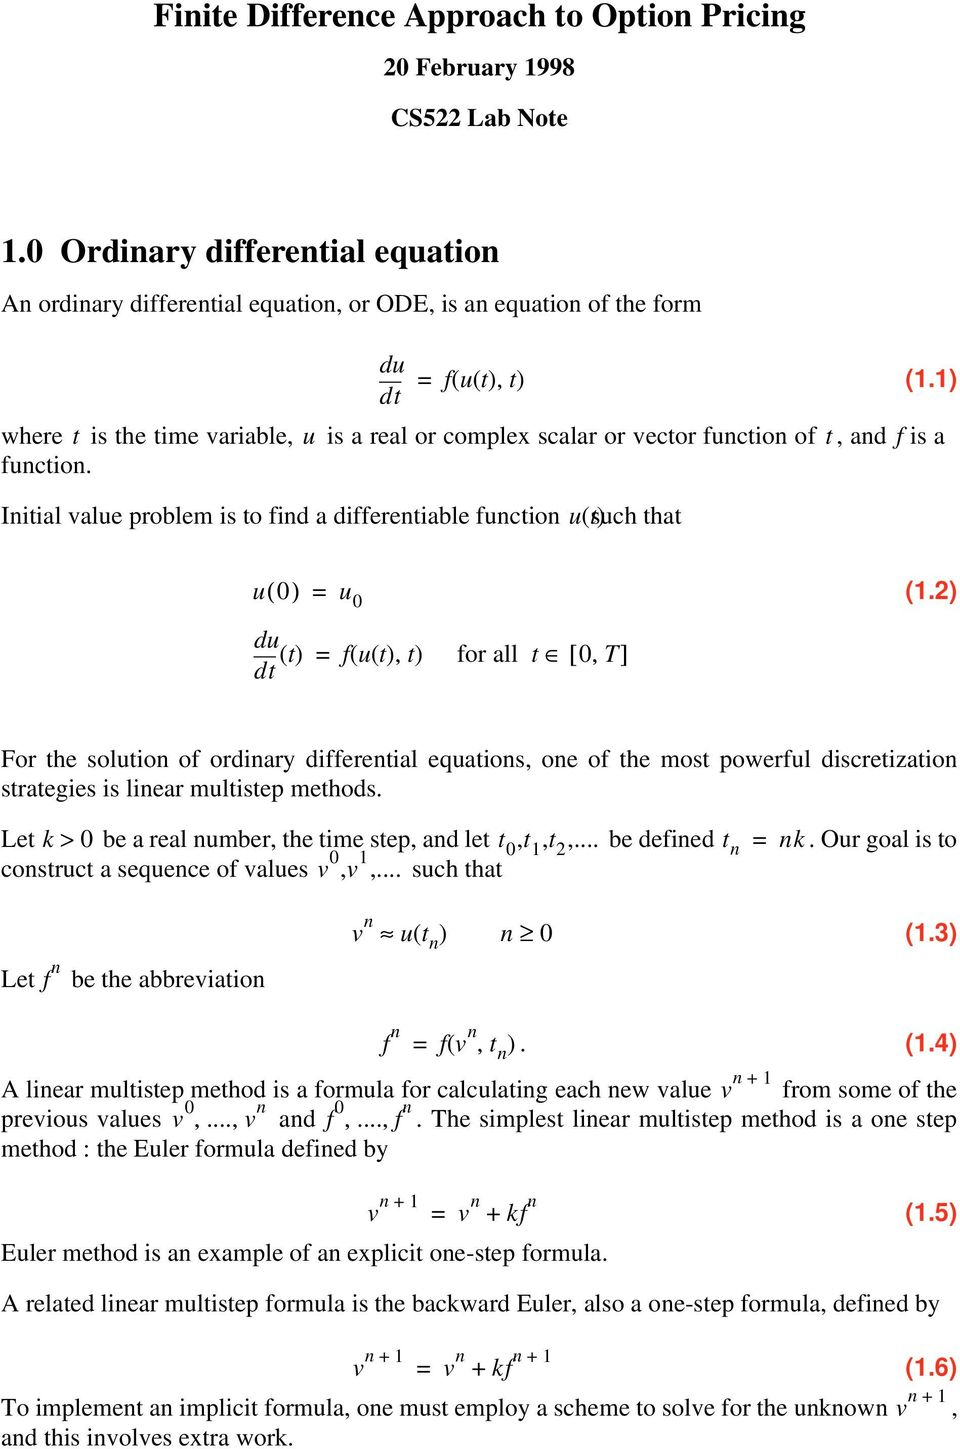 Finite Difference Approach to Option Pricing - PDF